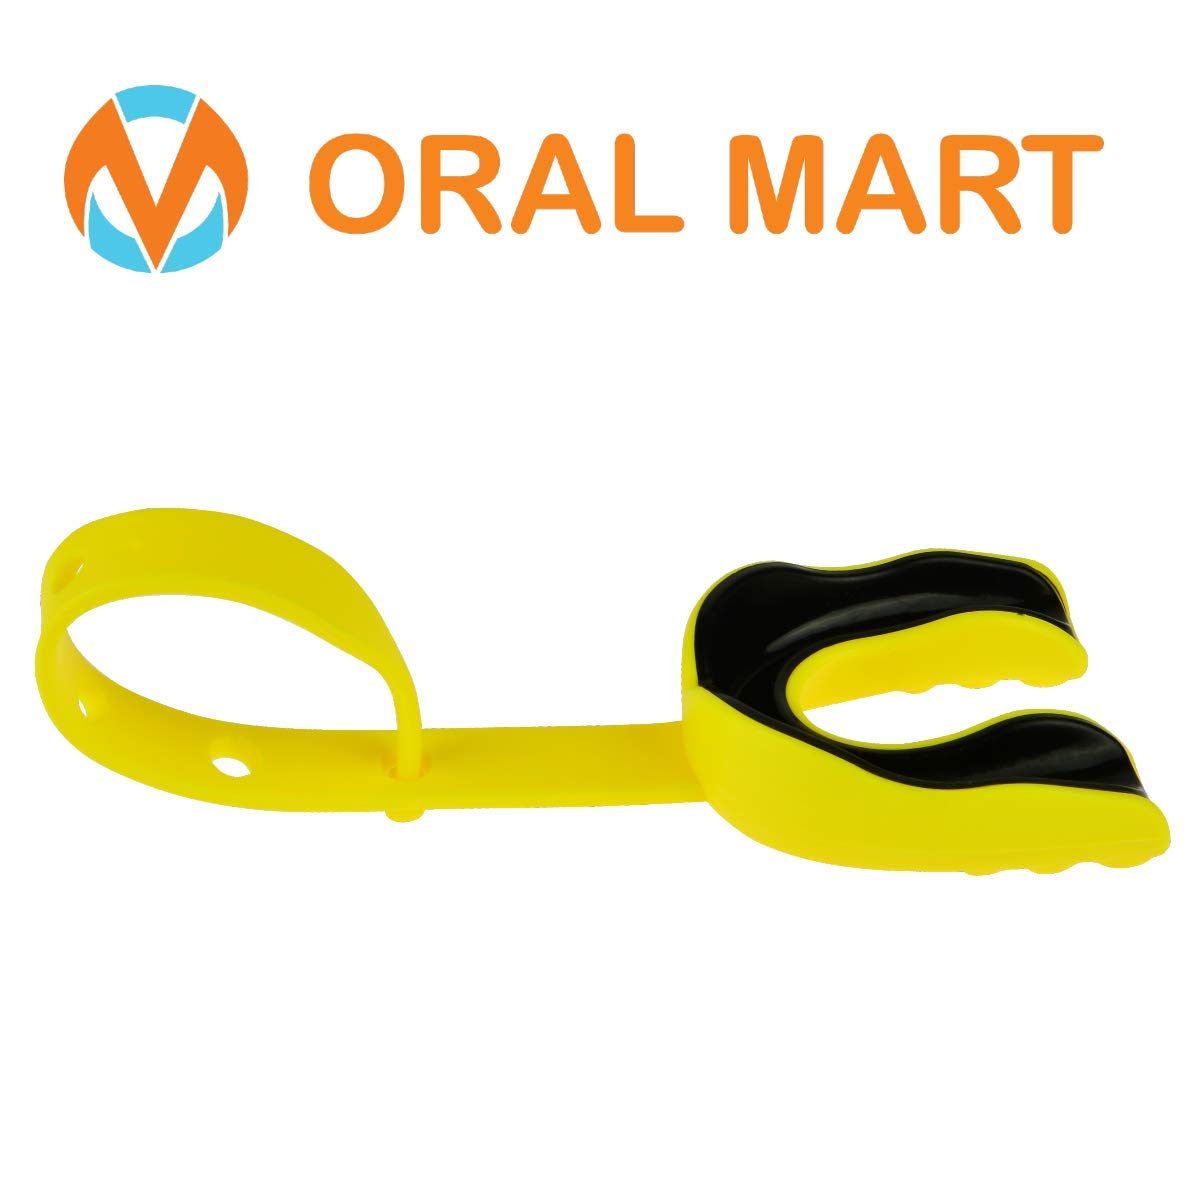 Oral Mart Yellow/Black Sports Mouth Guard with Strap (Ice Hockey/Football/Lacrosse) - Strapped Mouthguard for Football, Hockey, Lacrosse, College Football (with Free Case) by Oral Mart